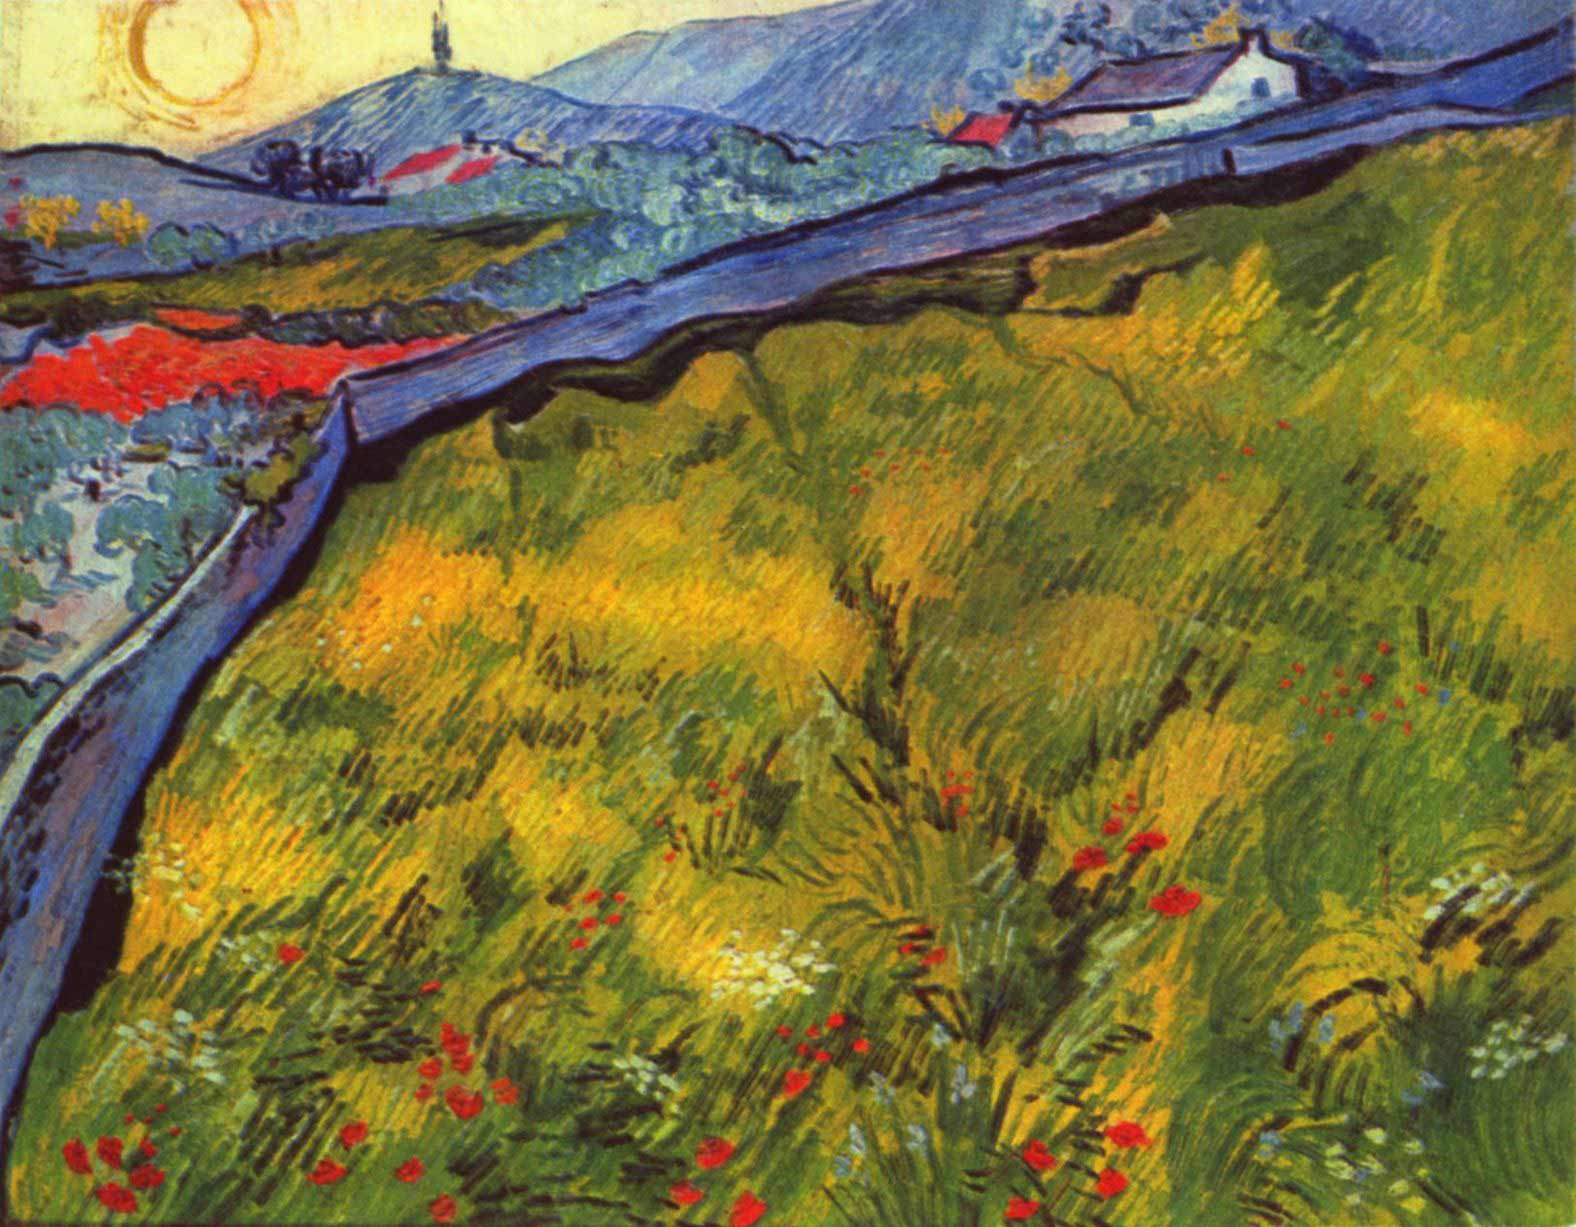 Vincent van Gogh: Enclosed Wheat Field with Rising Sun, 1889